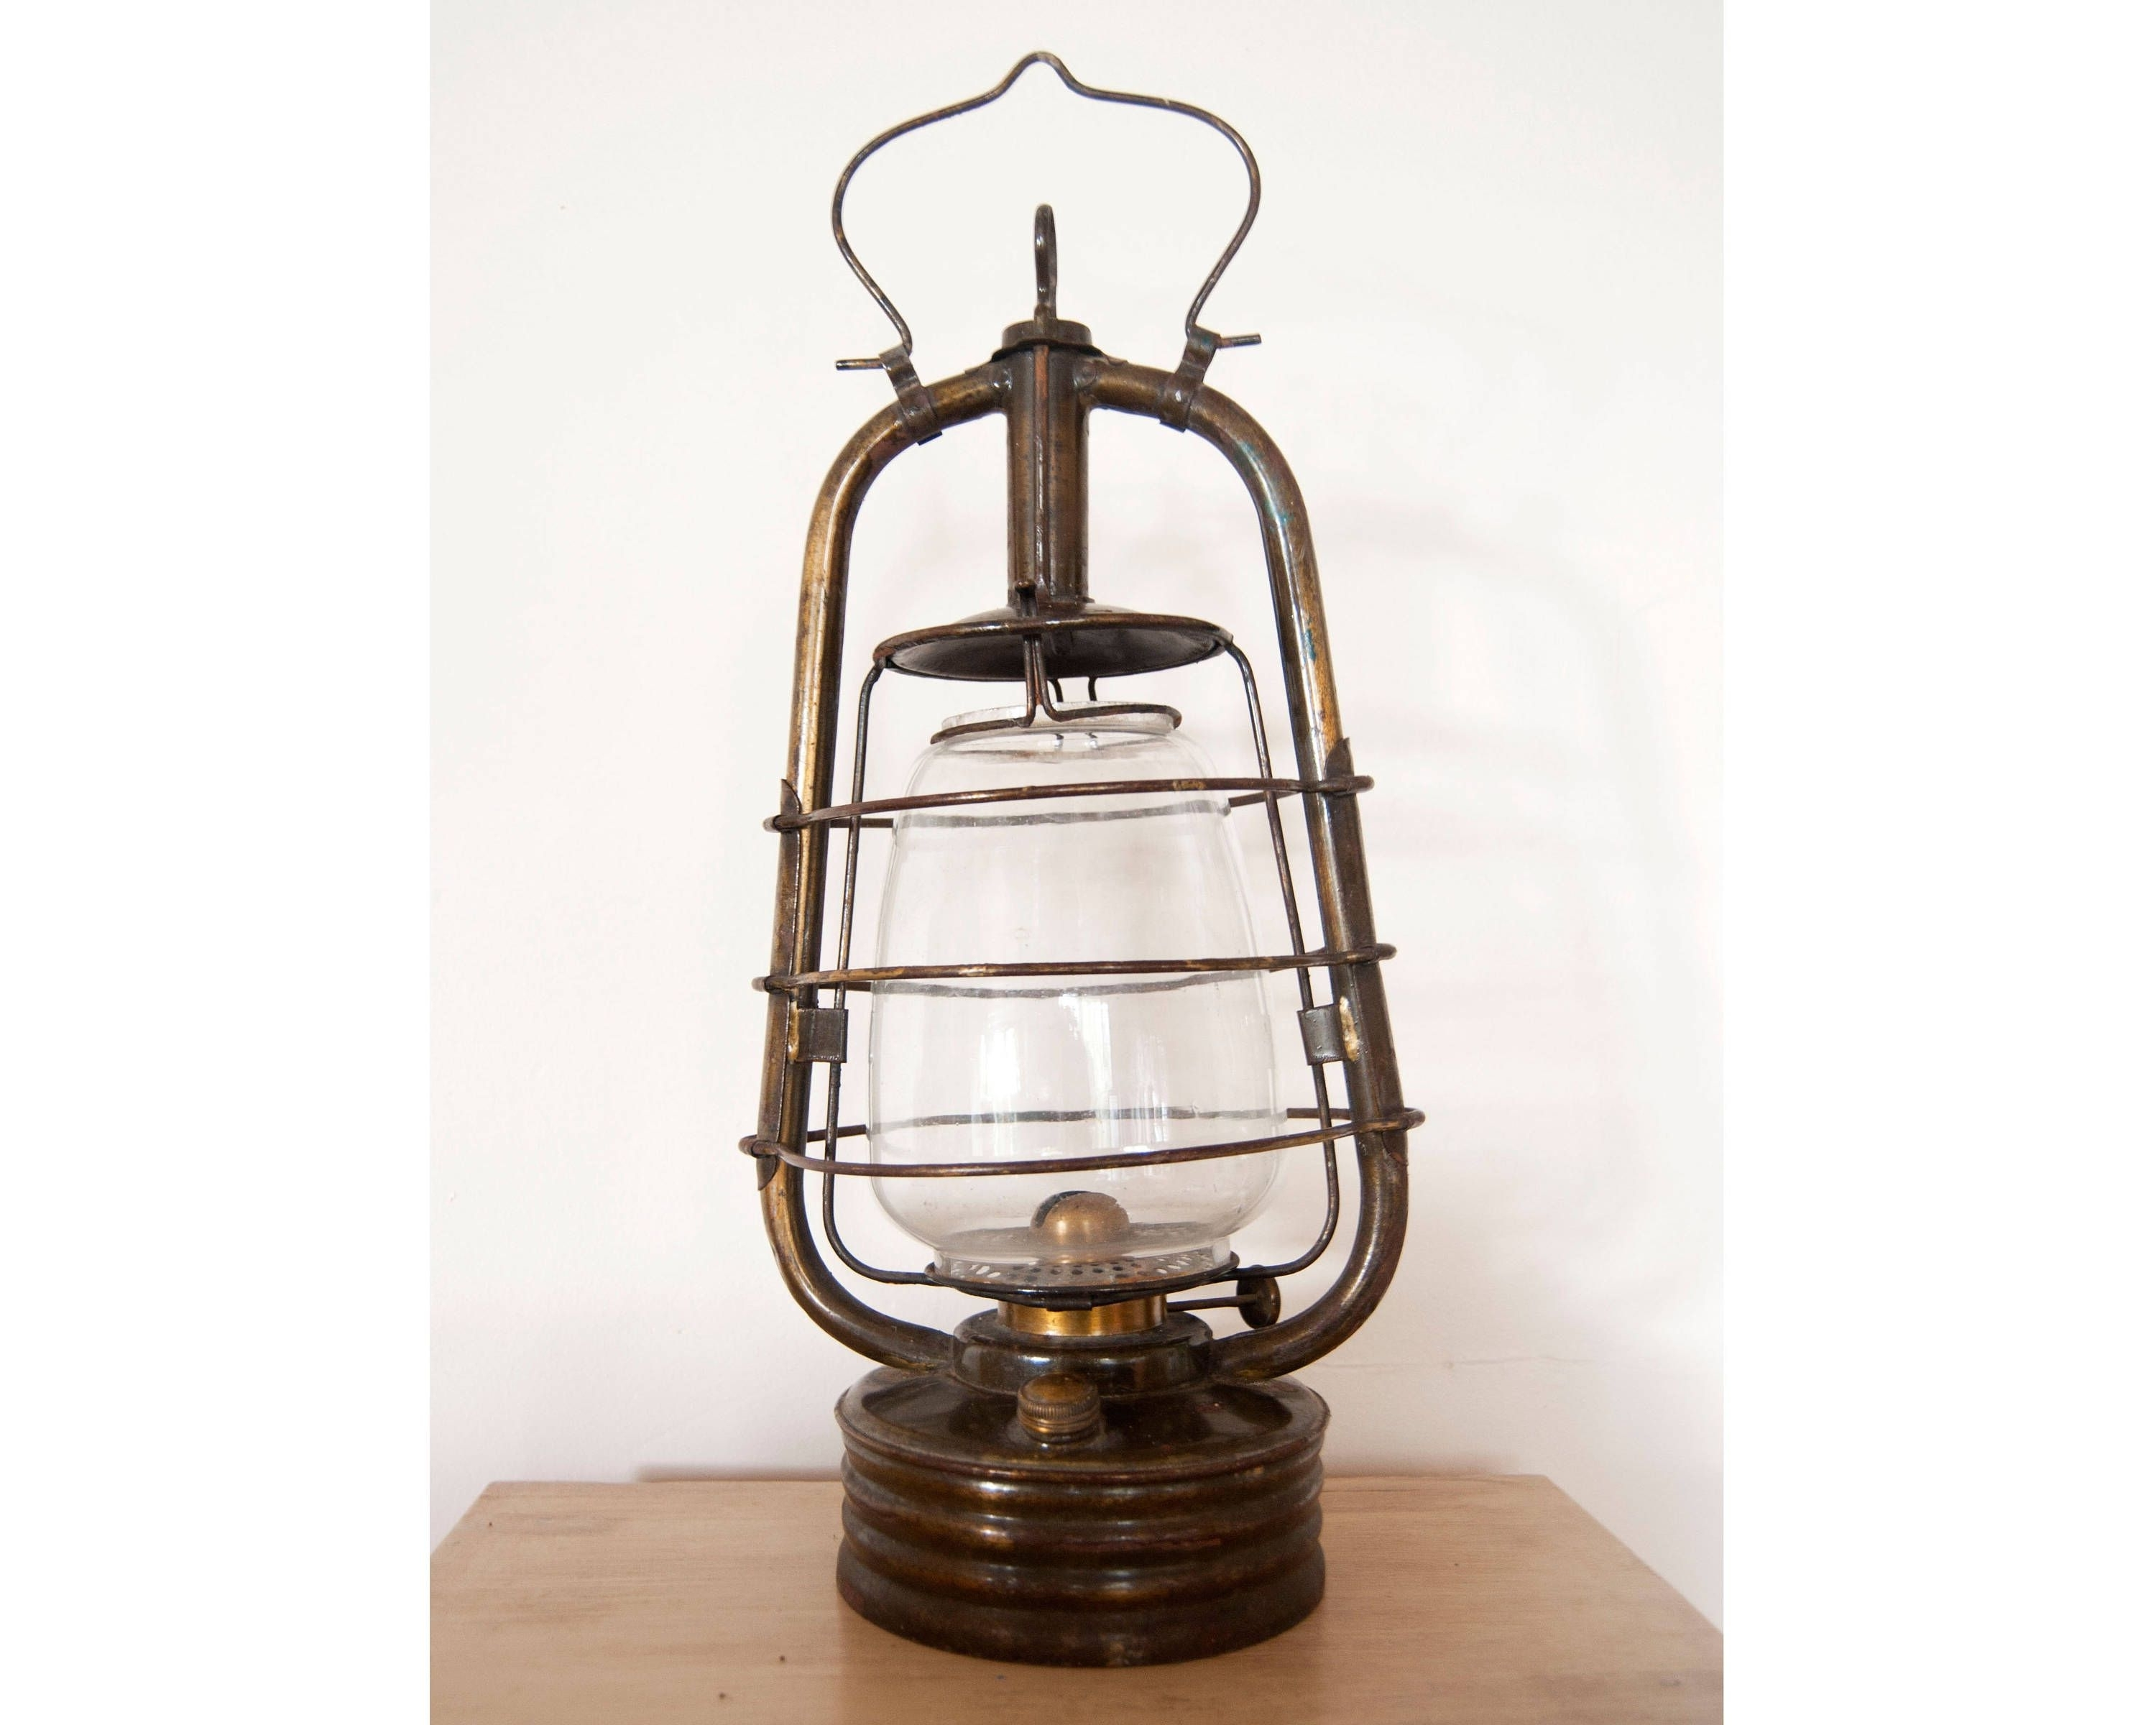 Latest Decorative Outdoor Kerosene Lanterns Intended For Vintage Lantern Oil Lamp – Antique French Hurricane Brass Lamp (View 4 of 20)